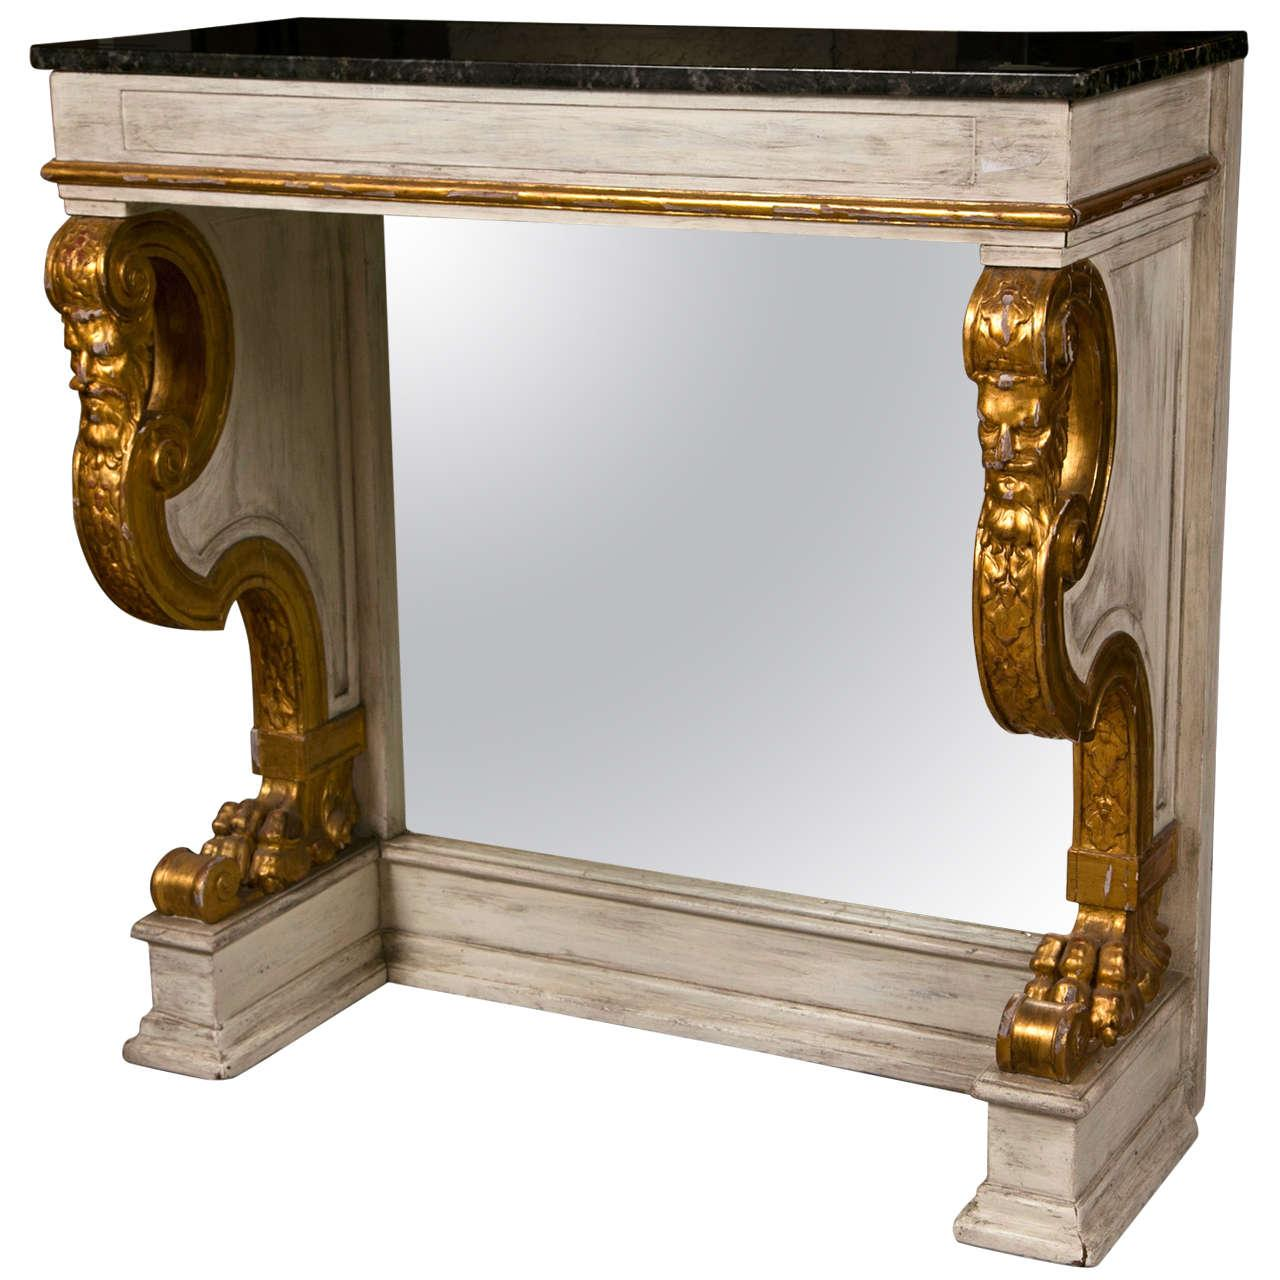 French Neoclassical Pier Console Table by Jansen - Image 1 of 9